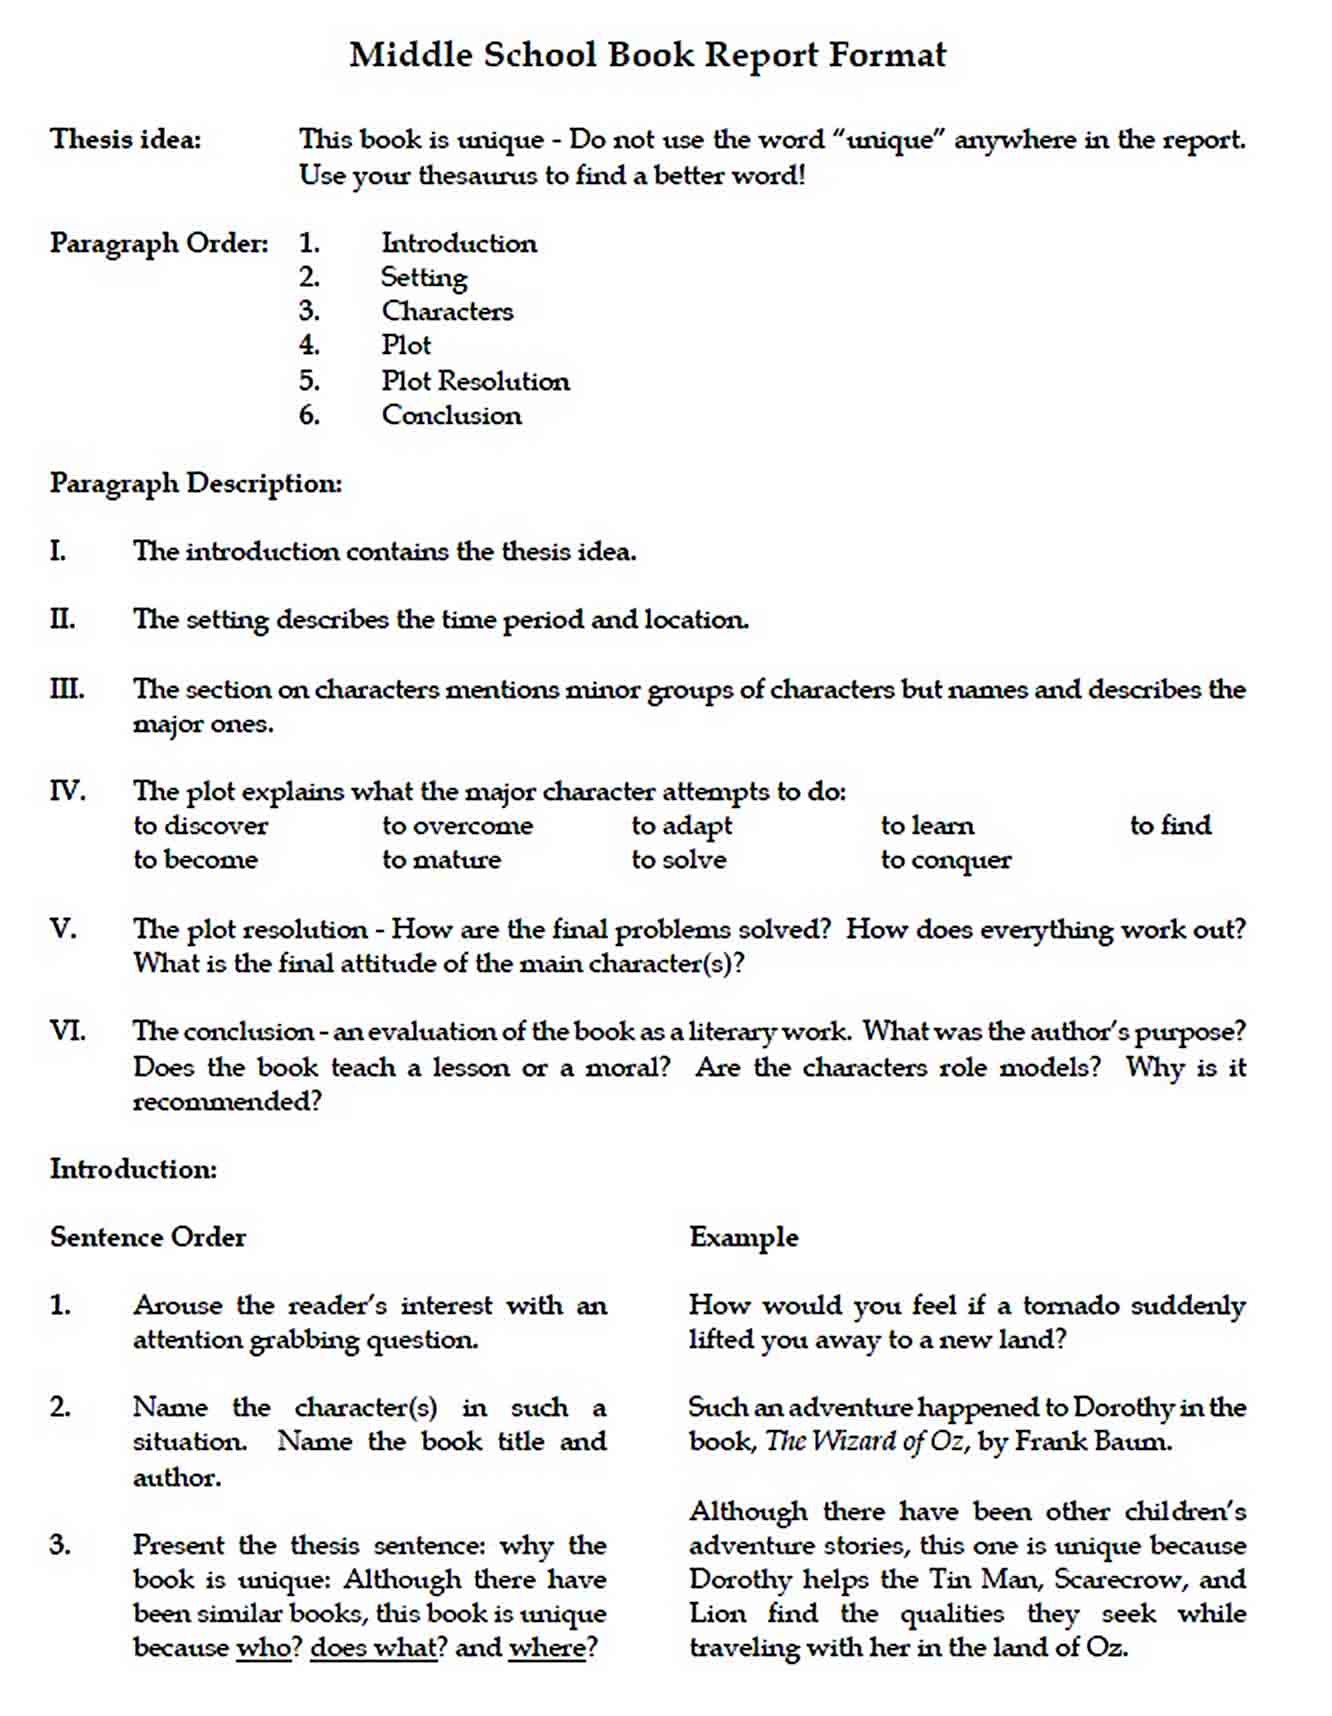 Templates Middle School Book Report Format